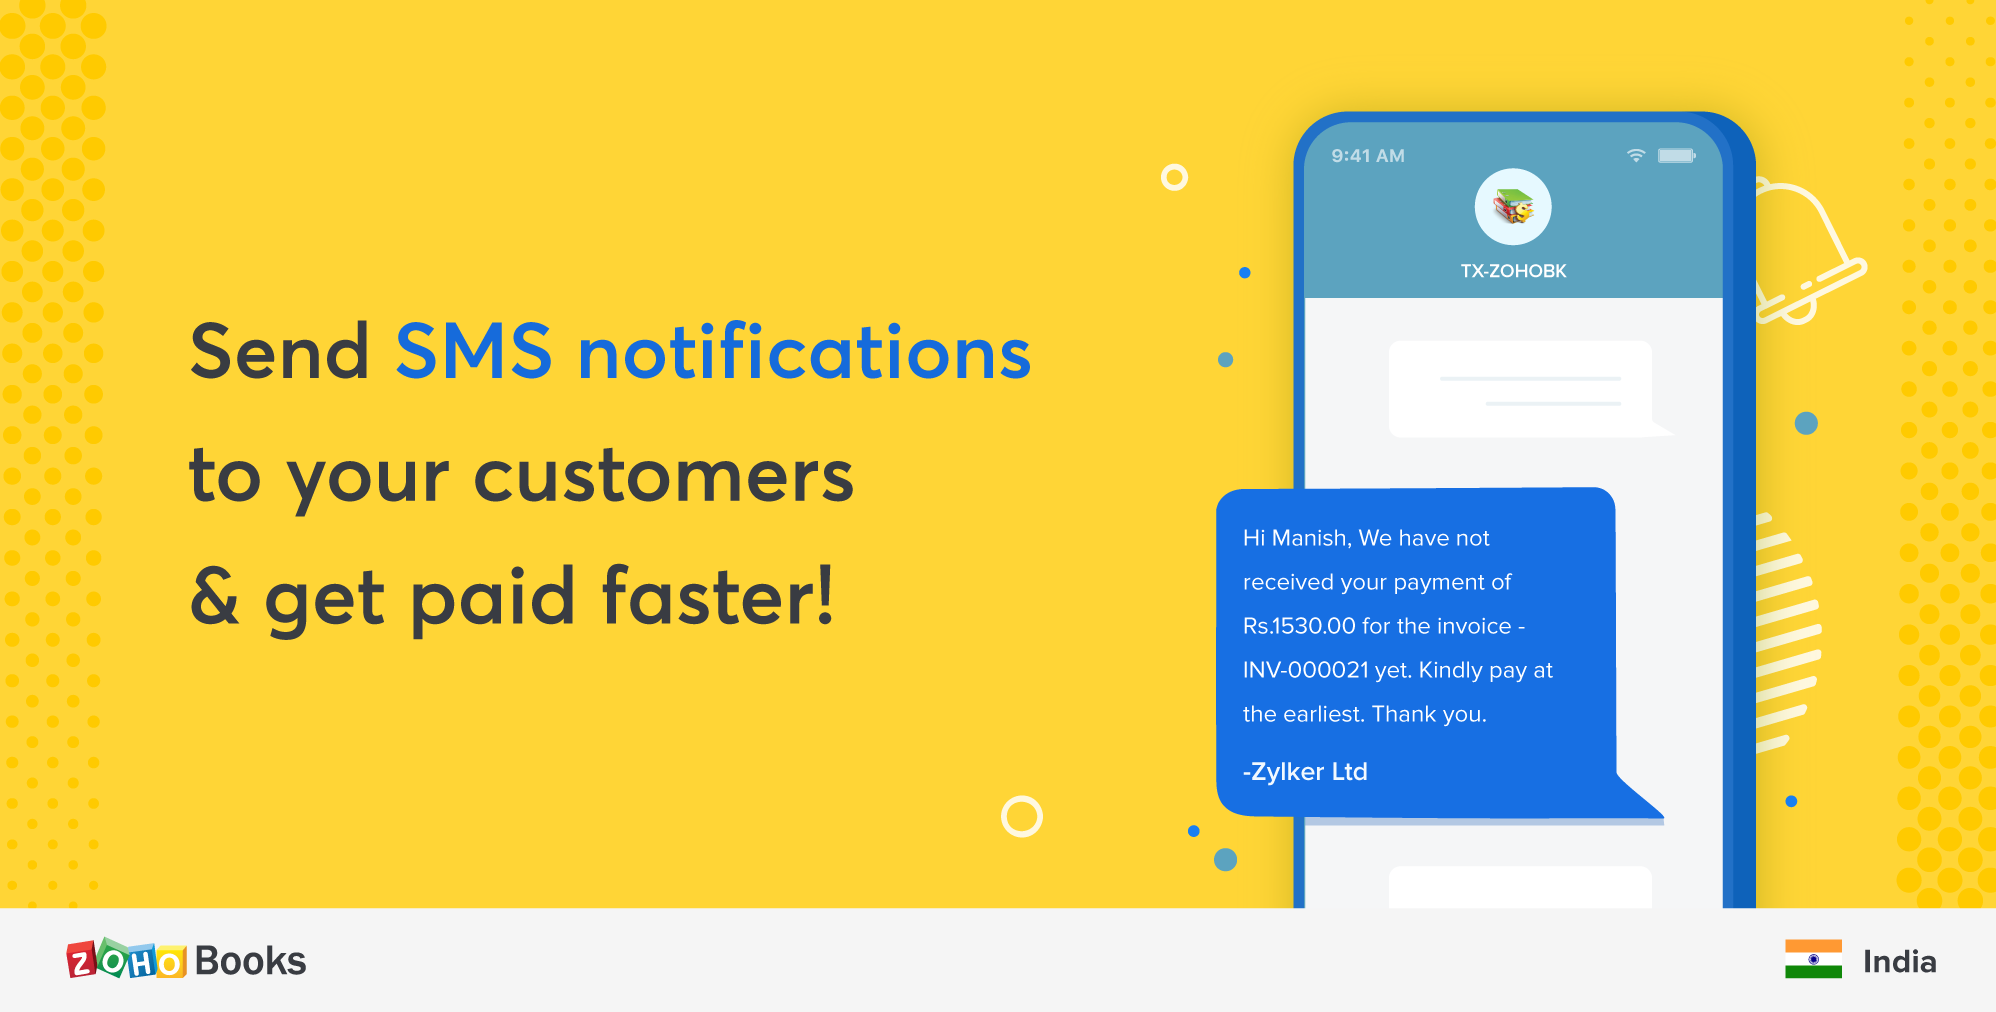 Introducing SMS notifications to collect payments faster